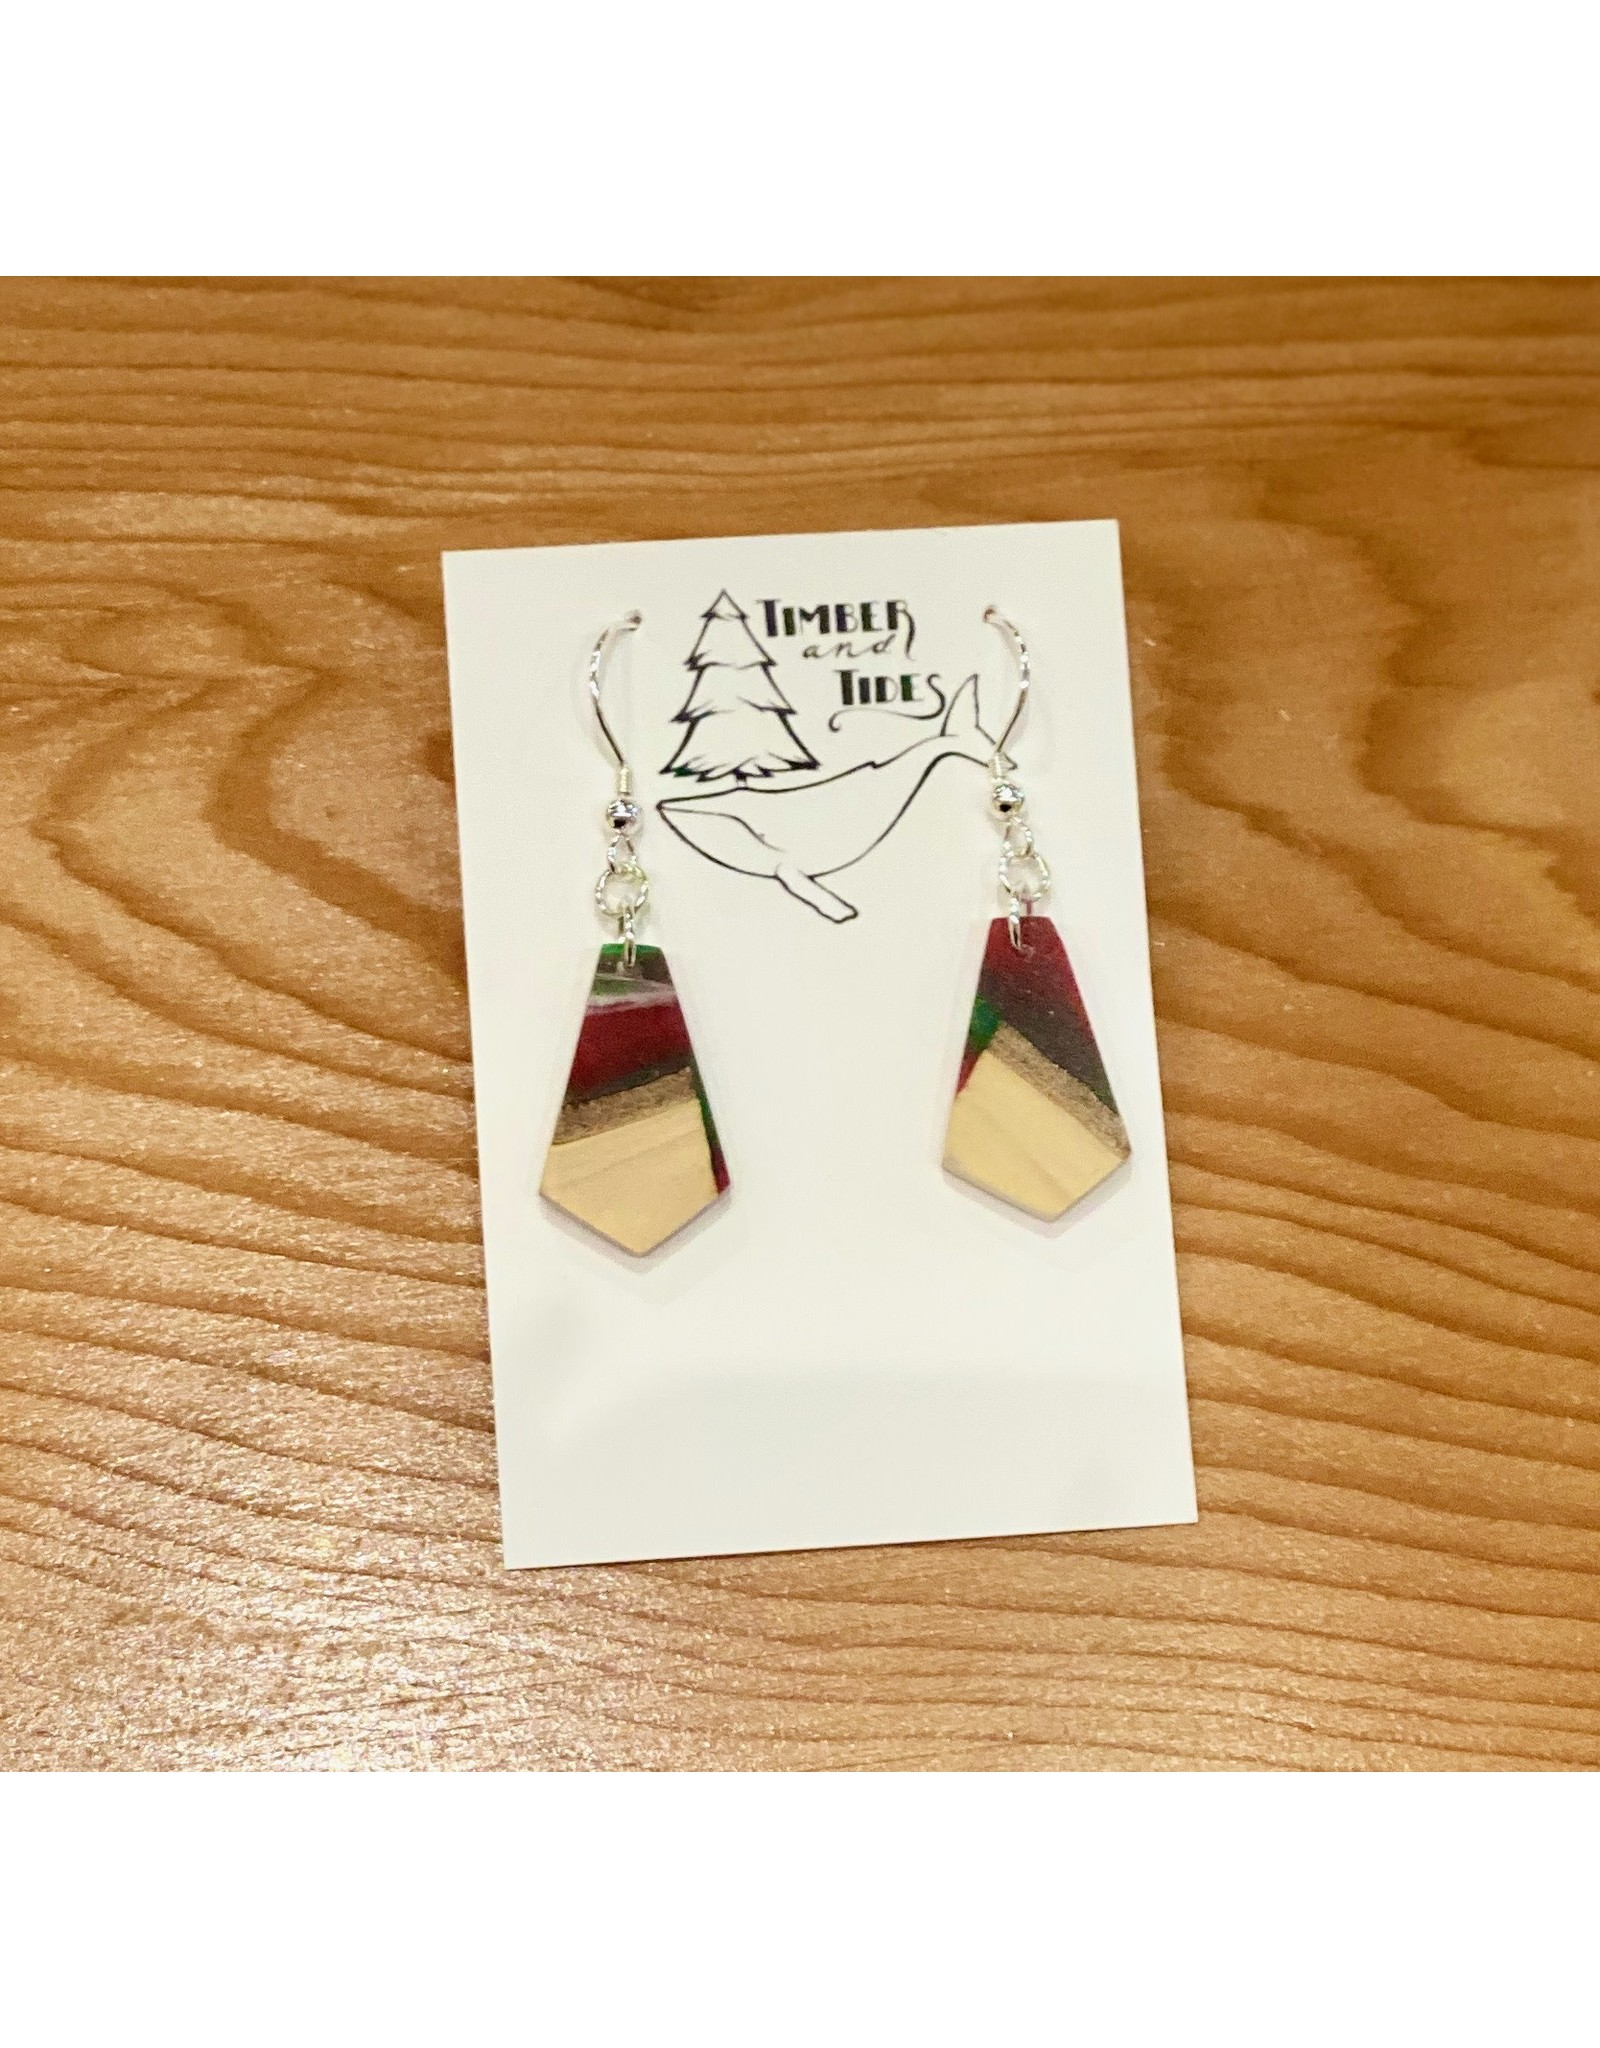 Timber and Tides Resin & Christmas Tree Earrings (21-34) | Tmber & Tides